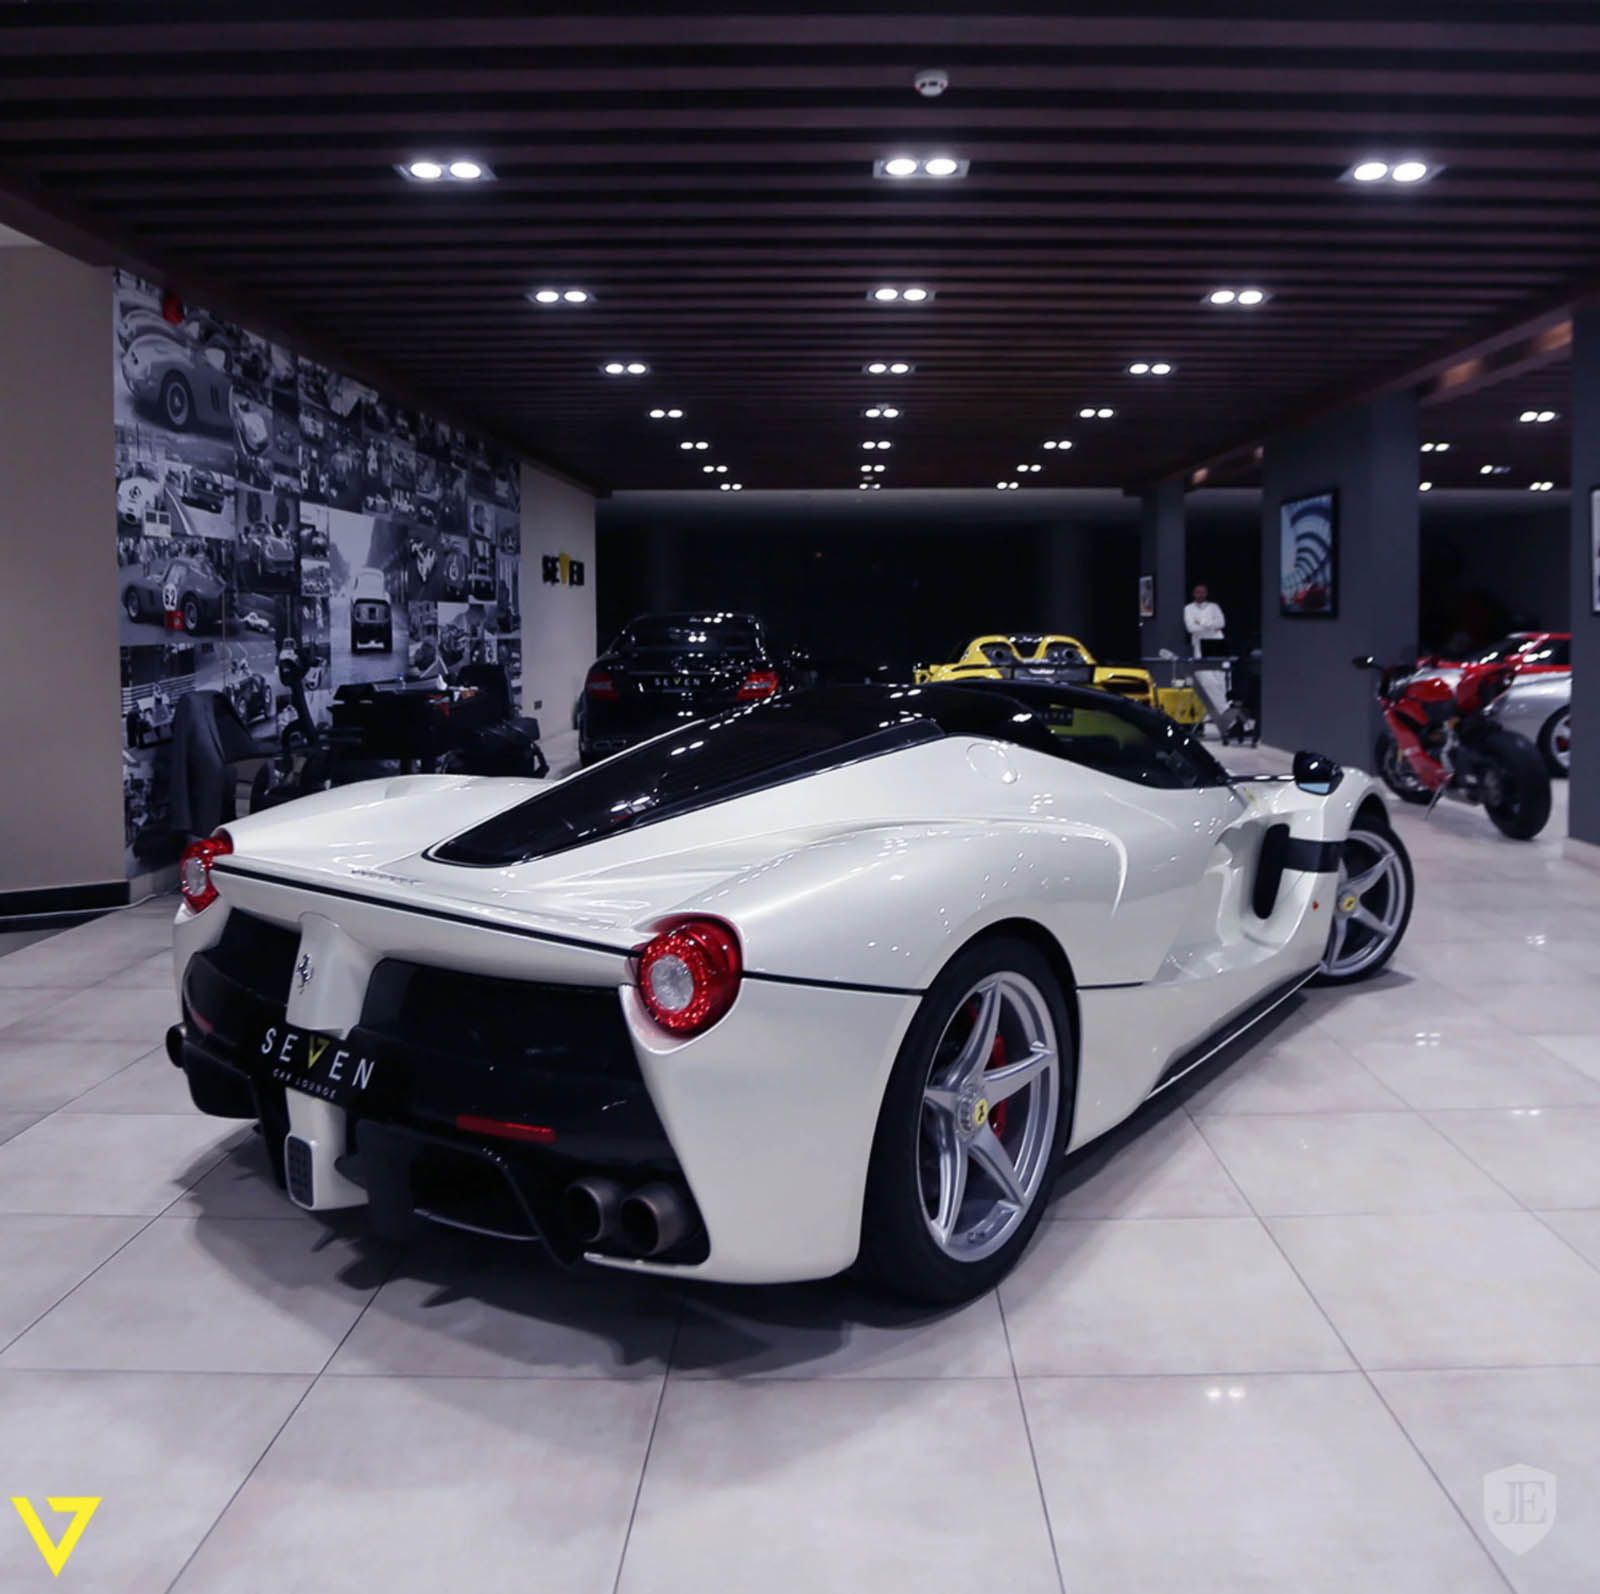 Any Takers For A Brand New White Laferrari Aperta Ferrari